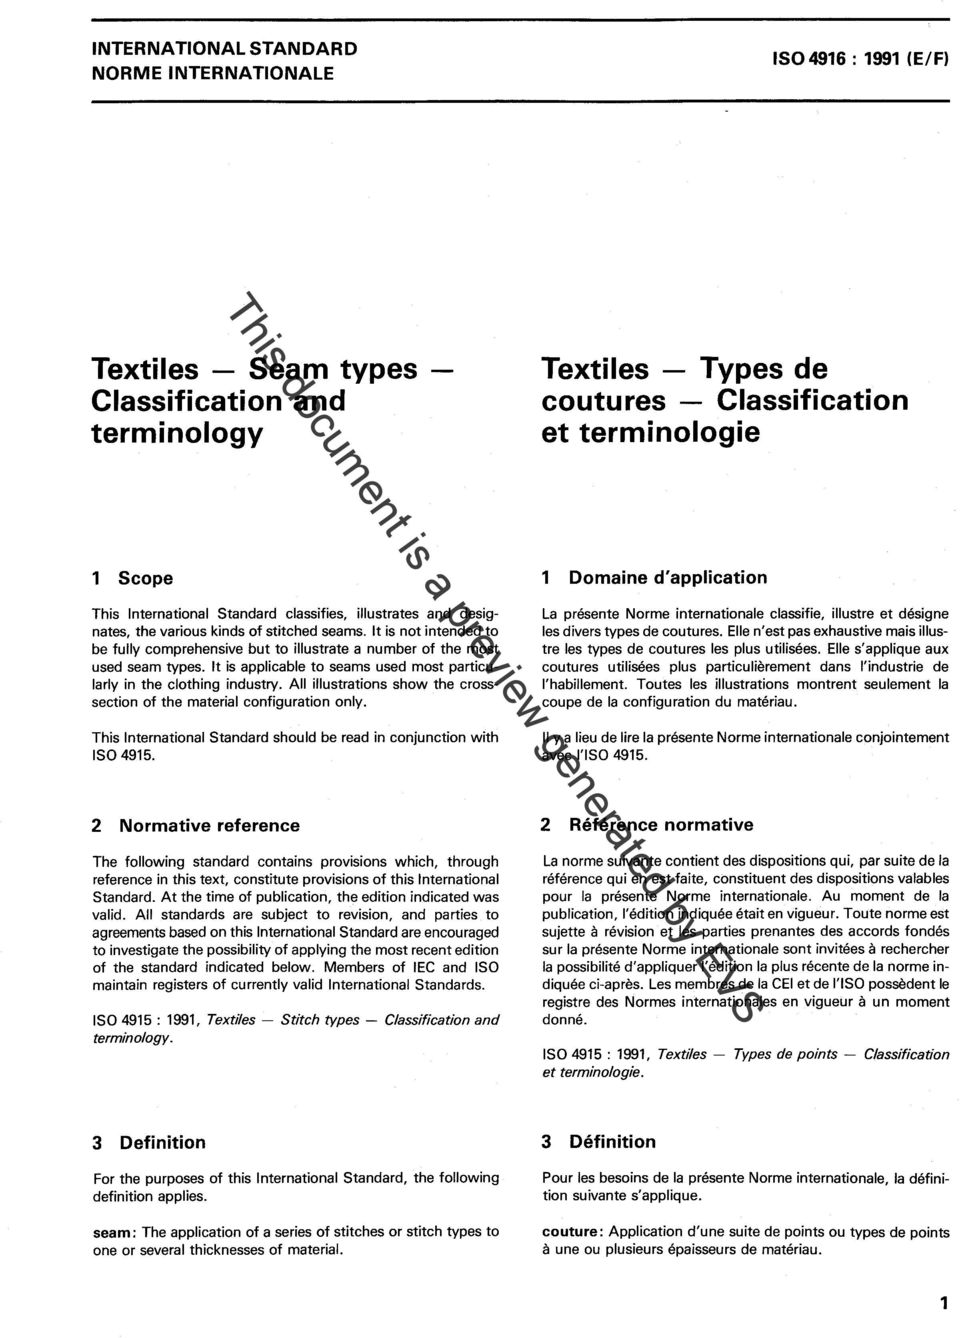 lt is applicable to seams used most particularly in the clothing industry. All illustrations show the crosssection of the material configuration only.